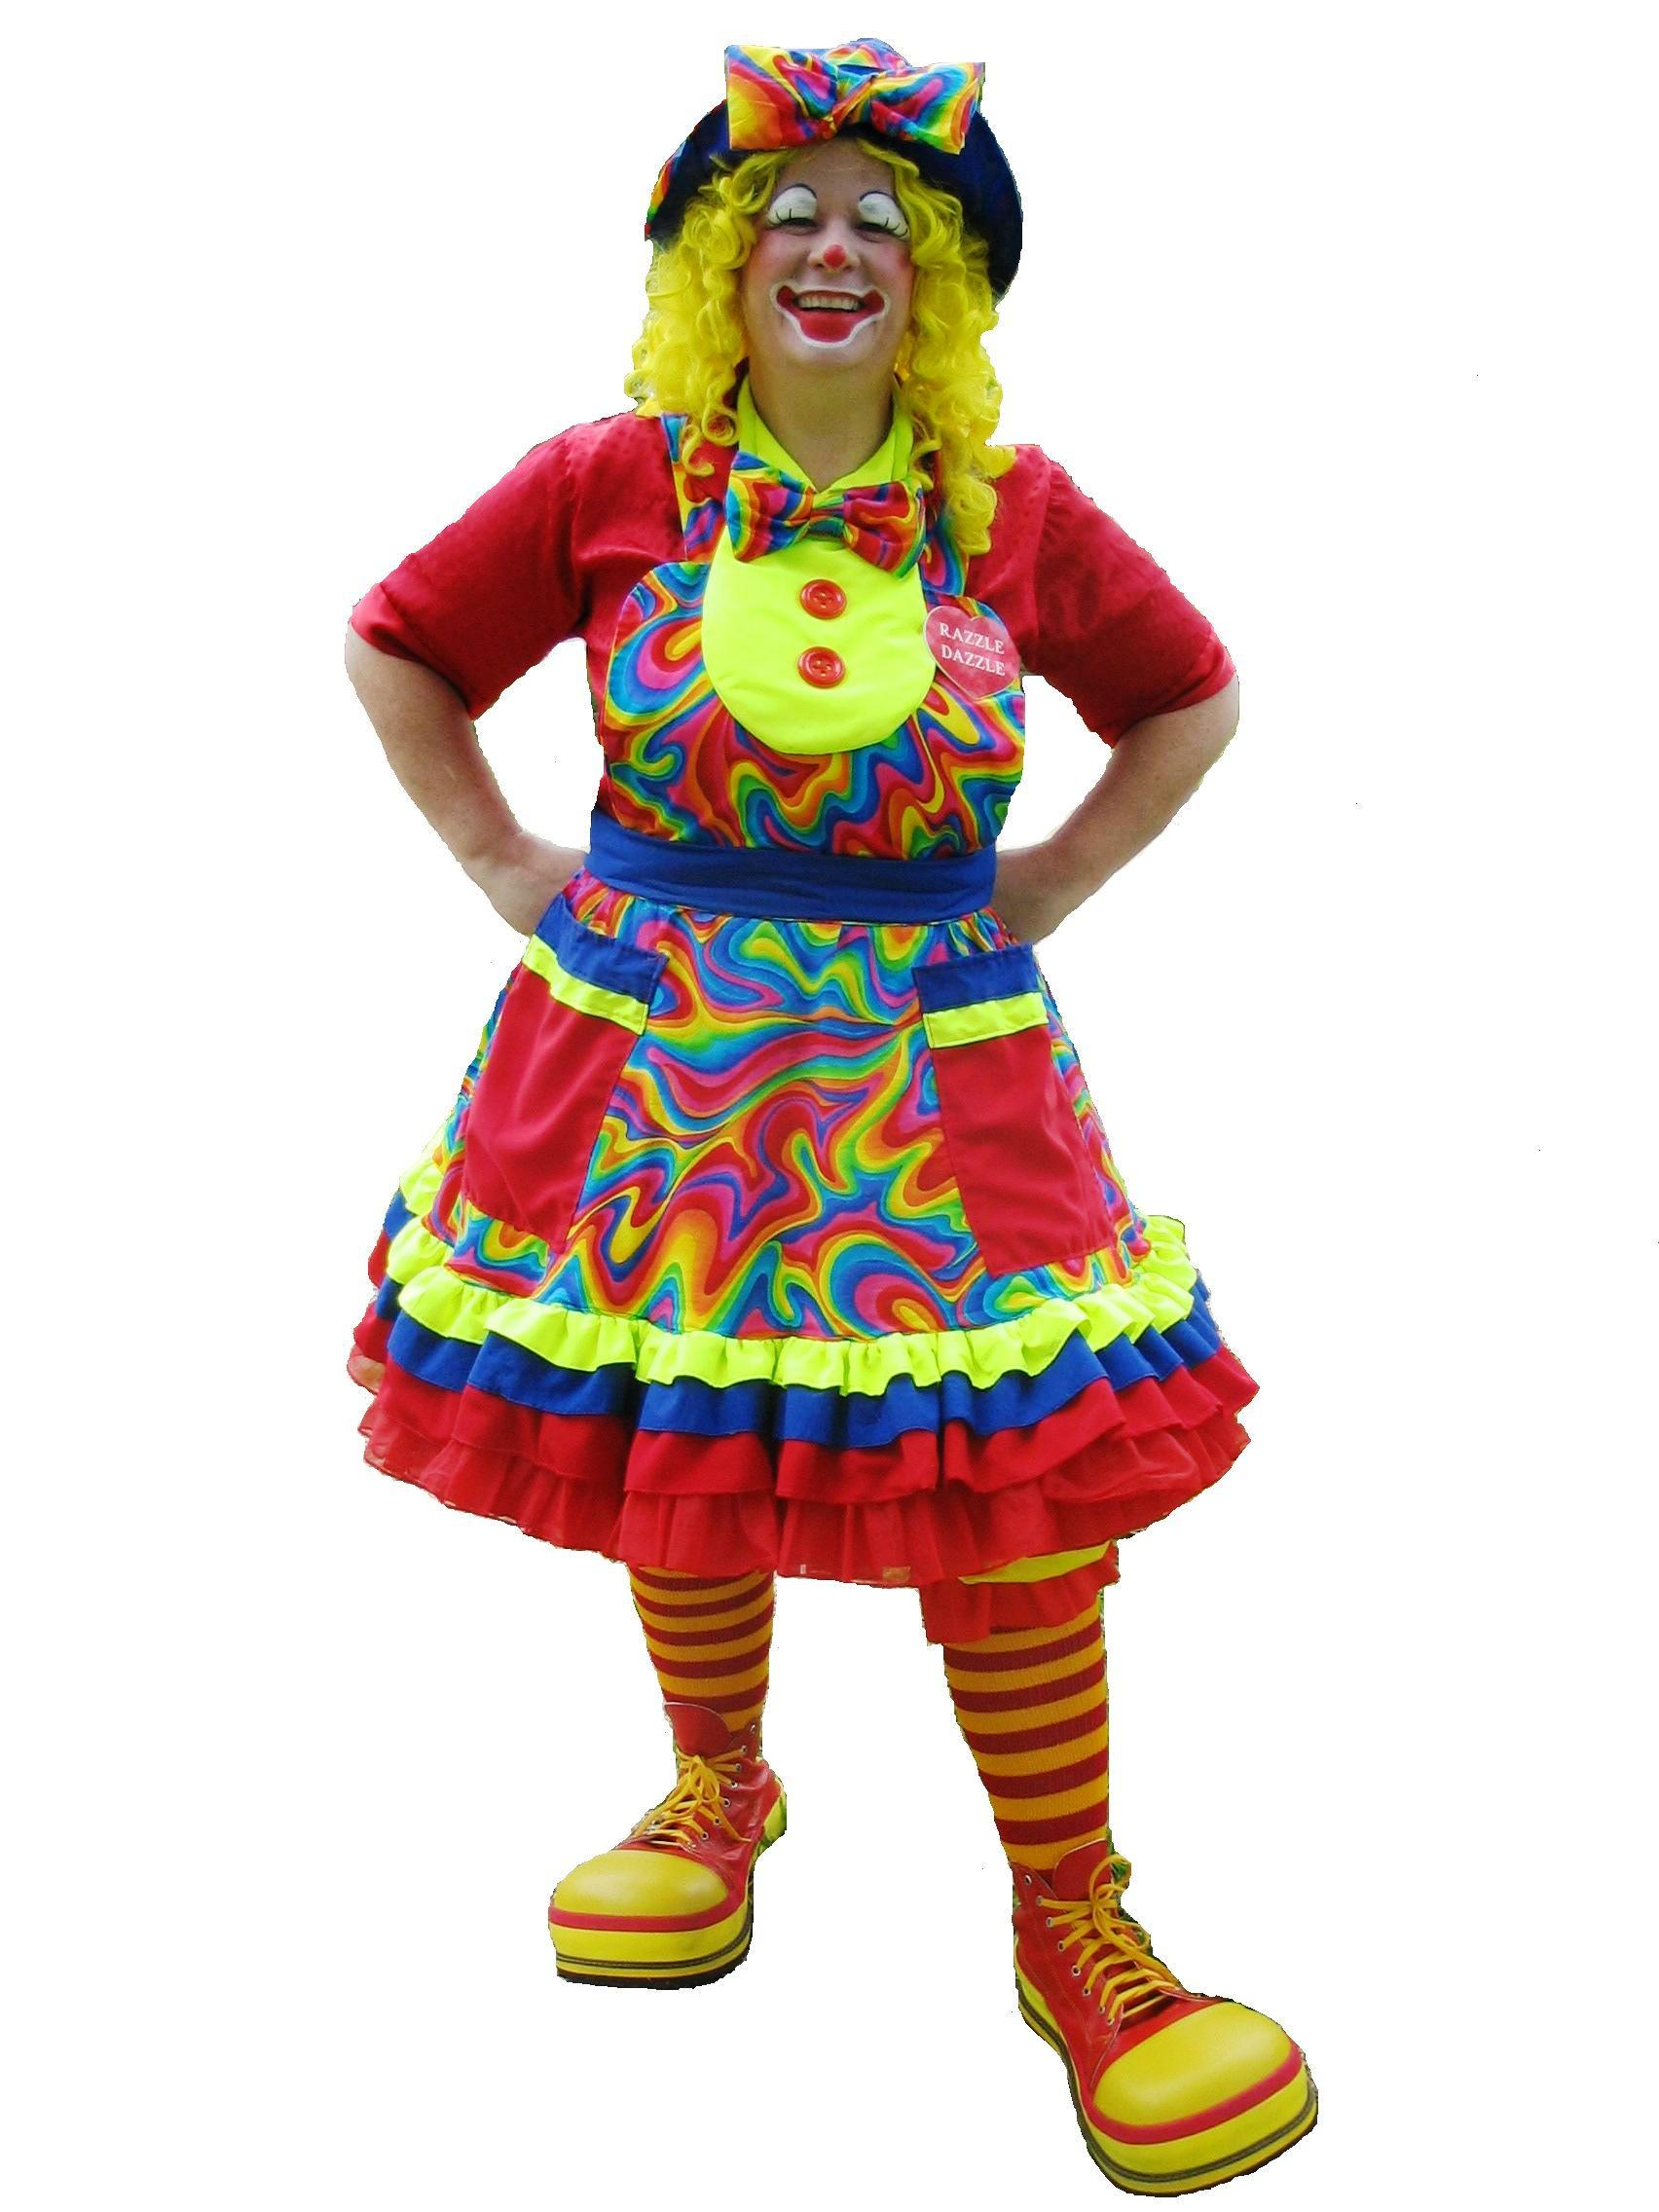 Razzle dazzle the clown dallas area clowns face painters for Face painting clowns for birthday parties